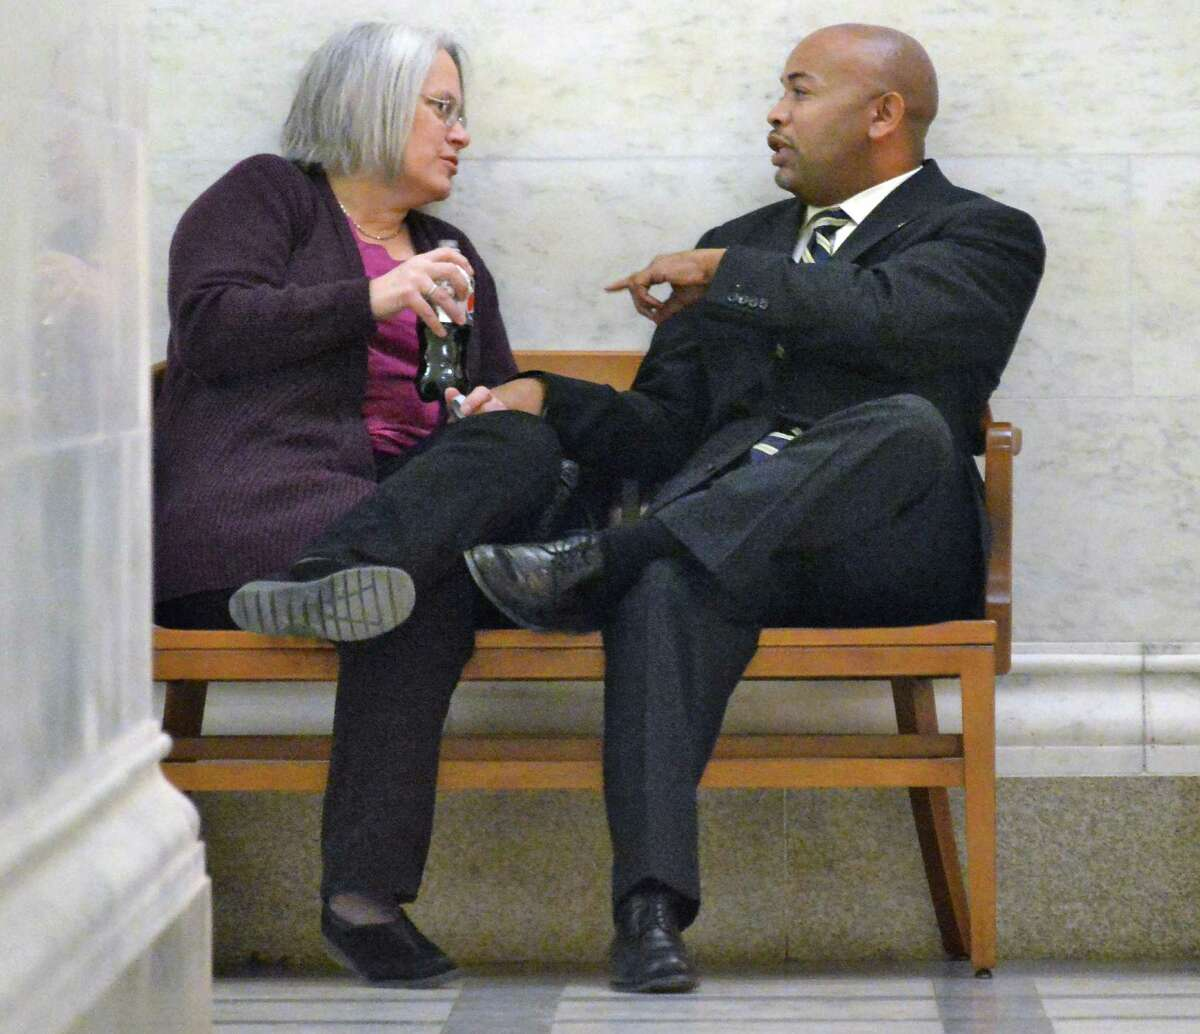 Assembly members Helene Weinstein, left, and Carl Heastie speak in a hallway outside the Assembly Chambers Tuesday Jan. 27, 2015. (John Carl D'Annibale / Times Union)